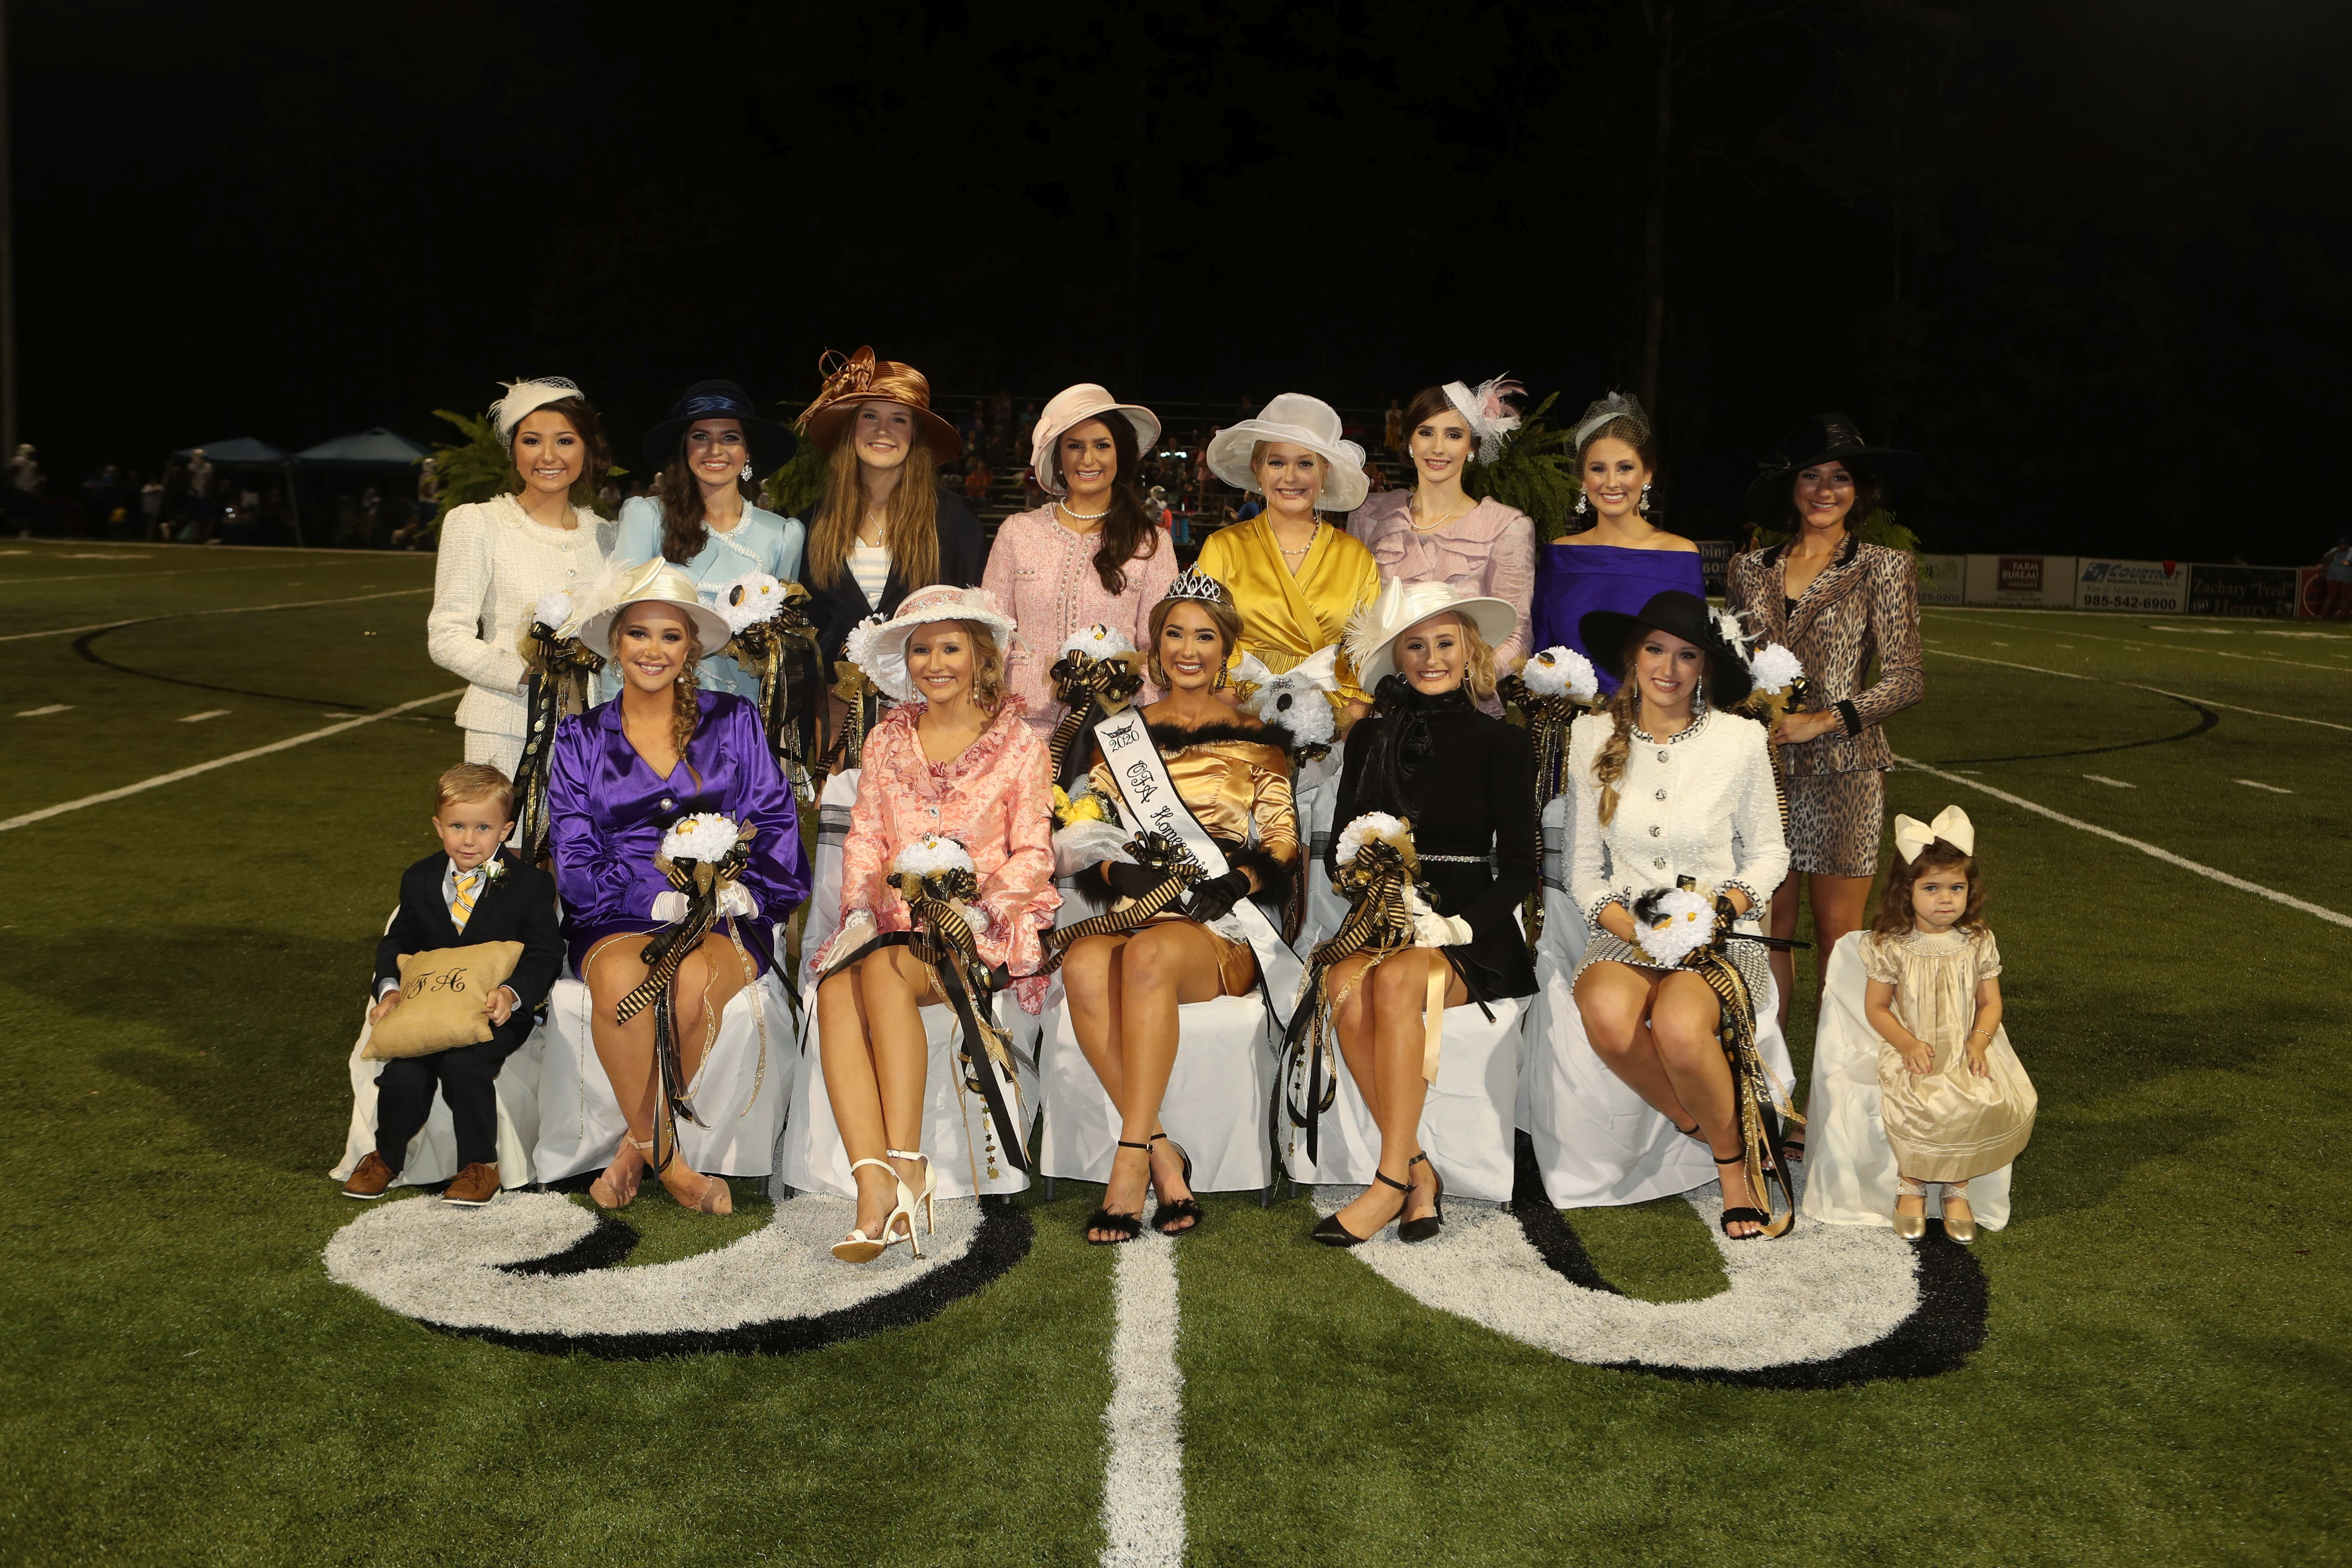 Oak Forest Academy Homecoming Queen and her Court 2020.